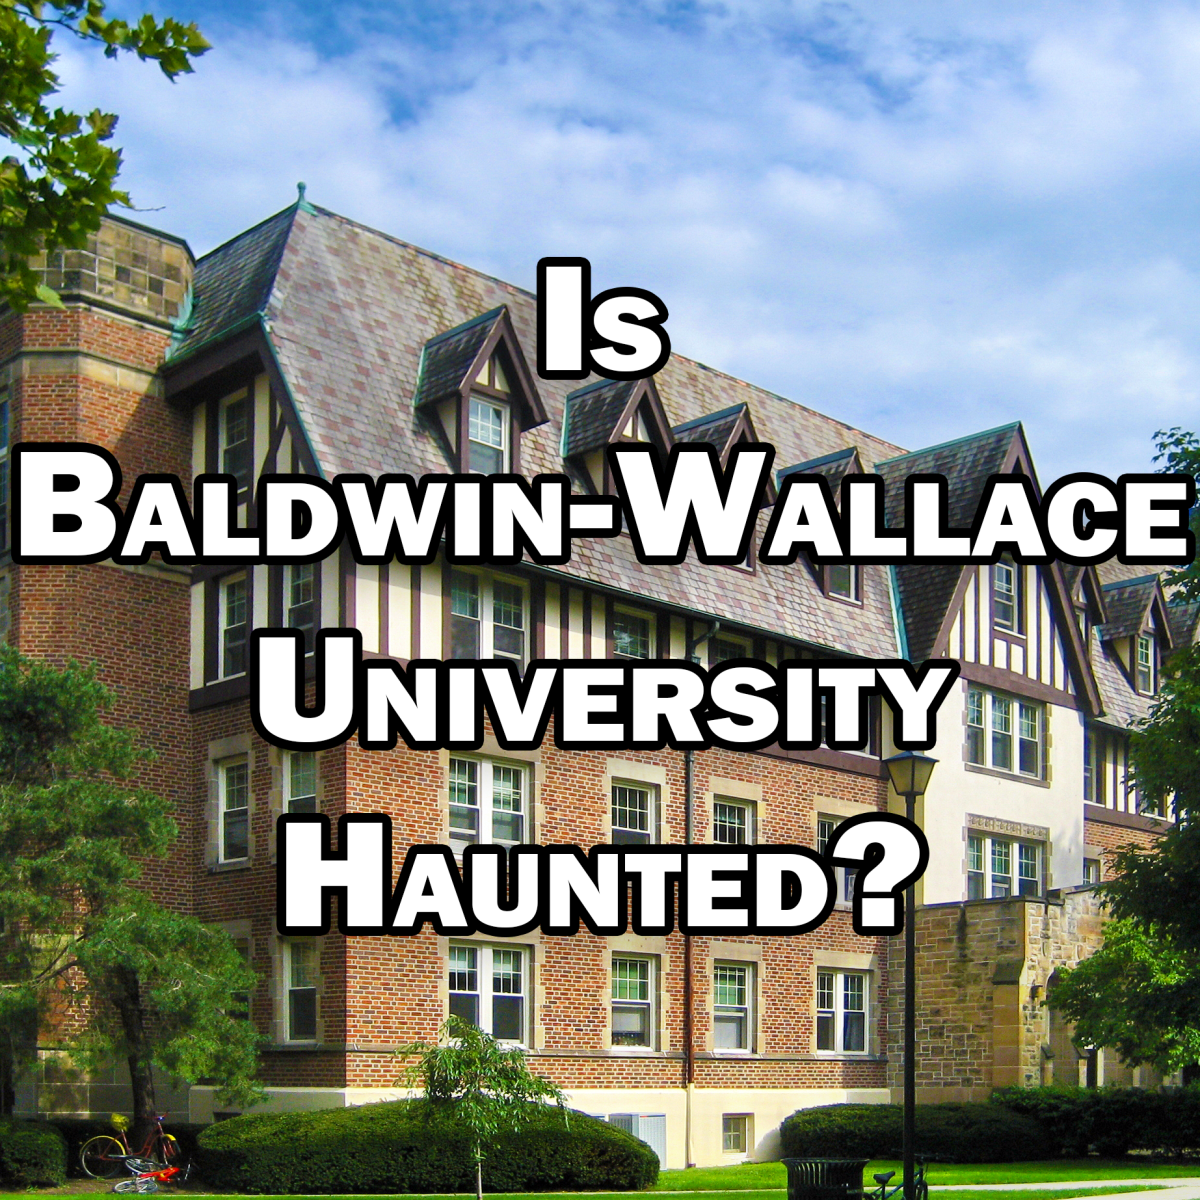 Is Baldwin-Wallace University Haunted?